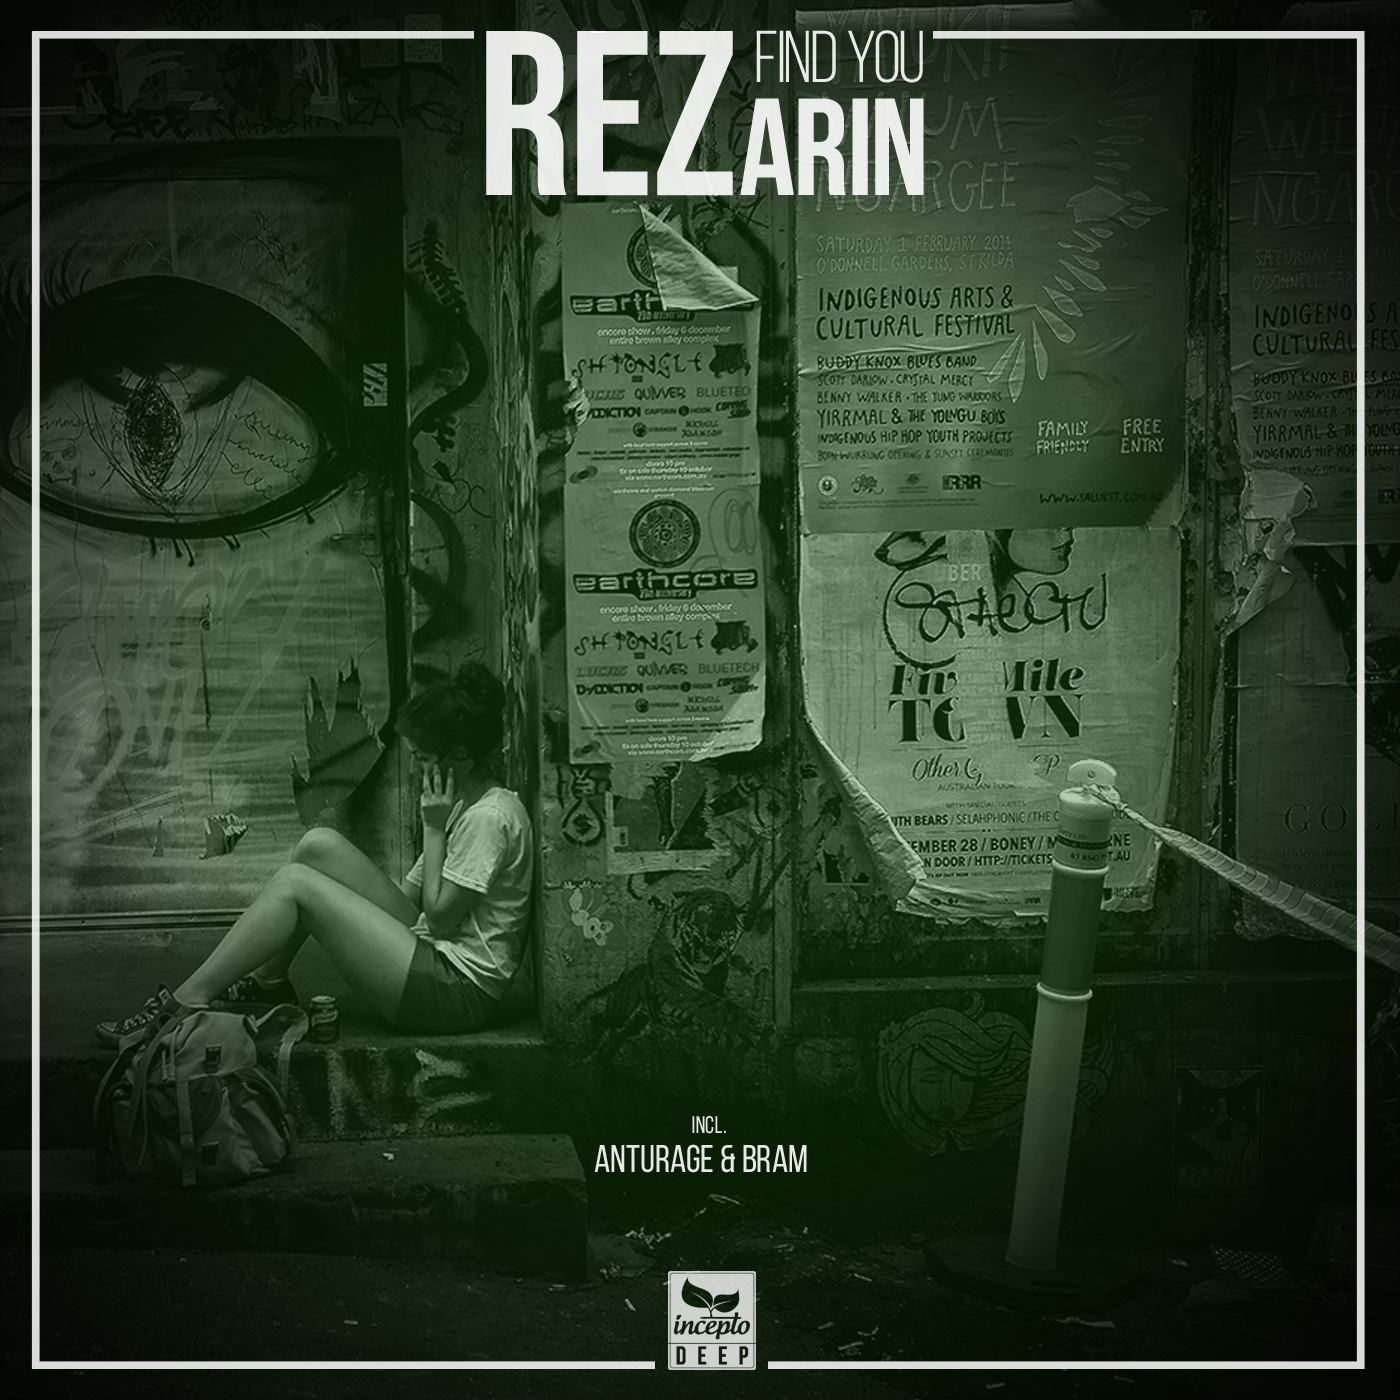 REZarin - Find You (Anturage Remix)